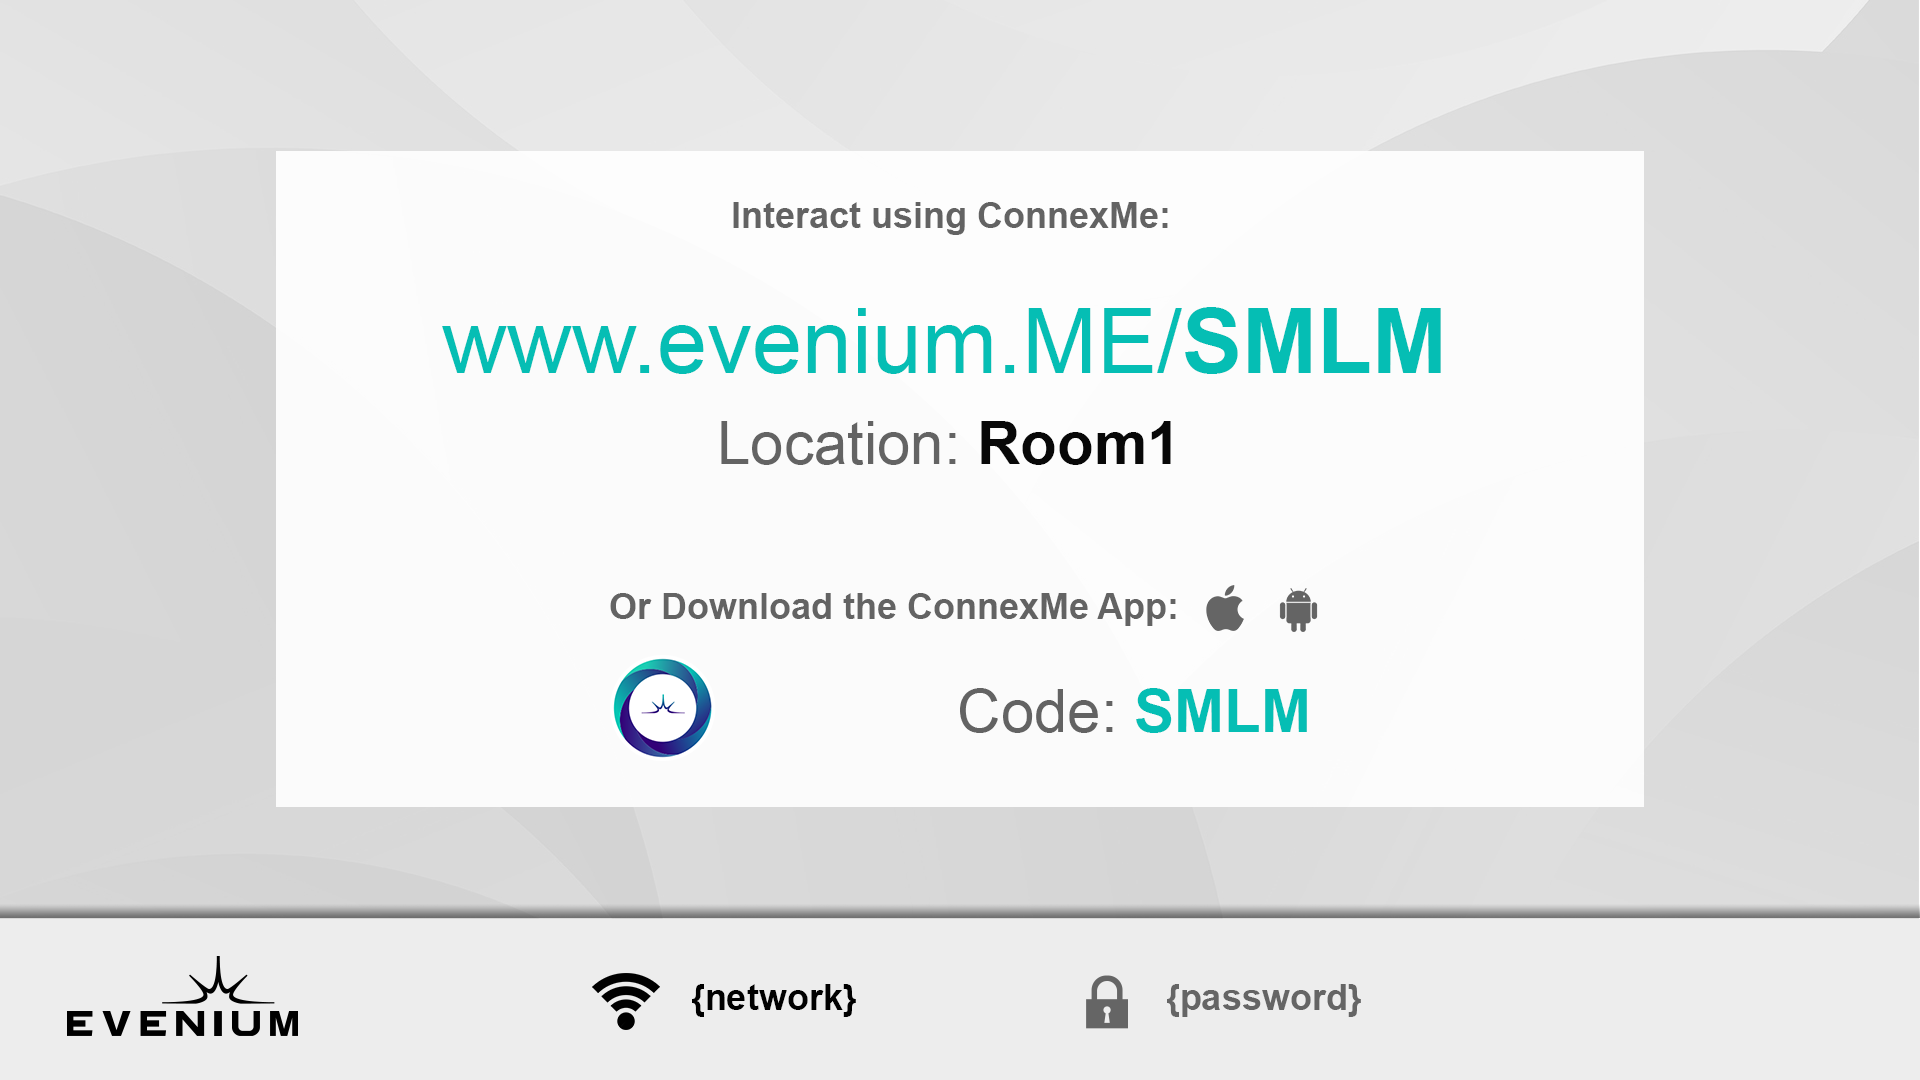 Find our new feature for ConnexMe to display the wifi connection ID and Password